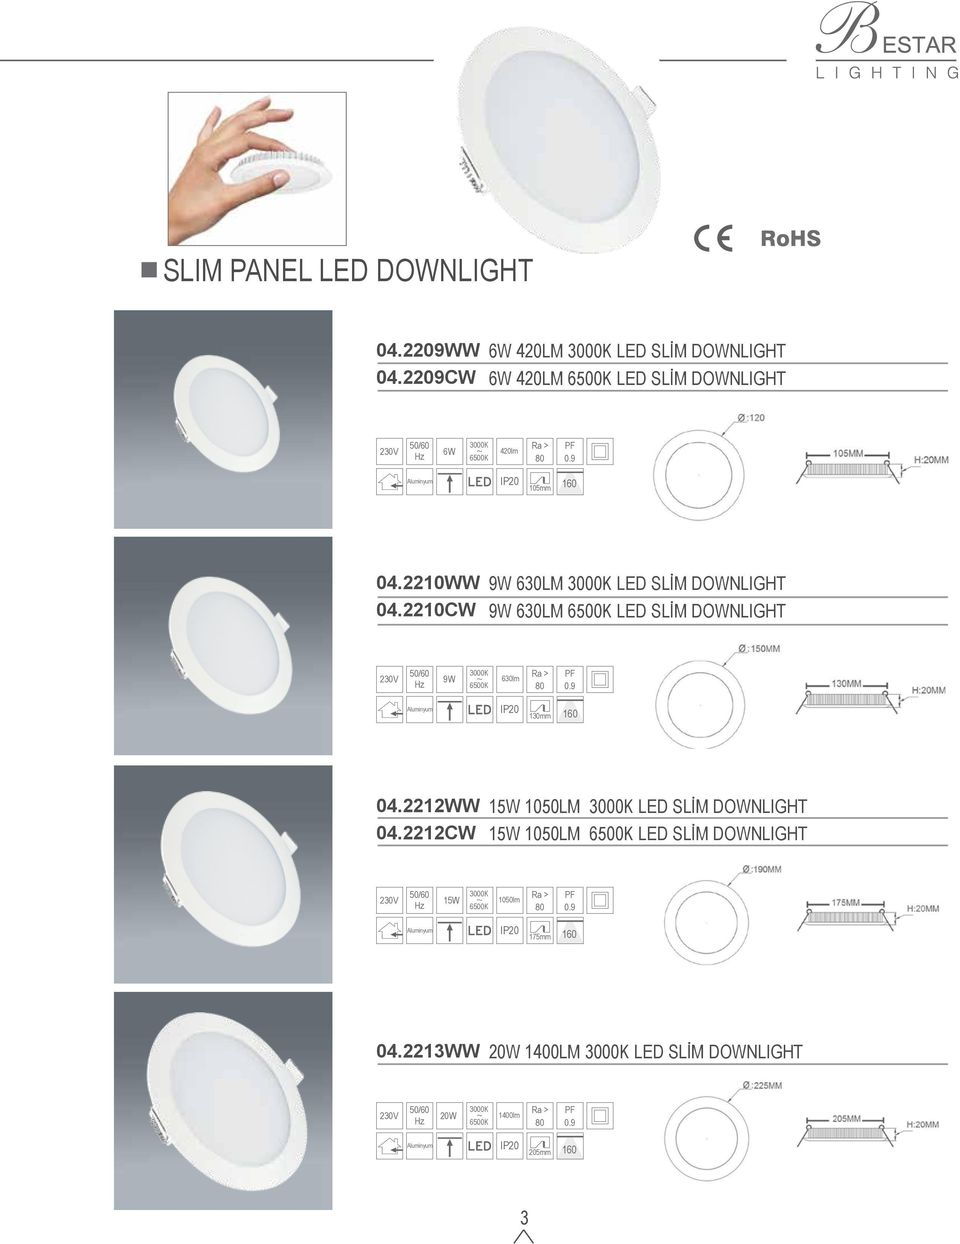 2210CW 9W 630LM LED SLİM DOWNLIGHT 9W 630LM 6500K LED SLİM DOWNLIGHT 9W 6500K 630lm 130mm 160 04.